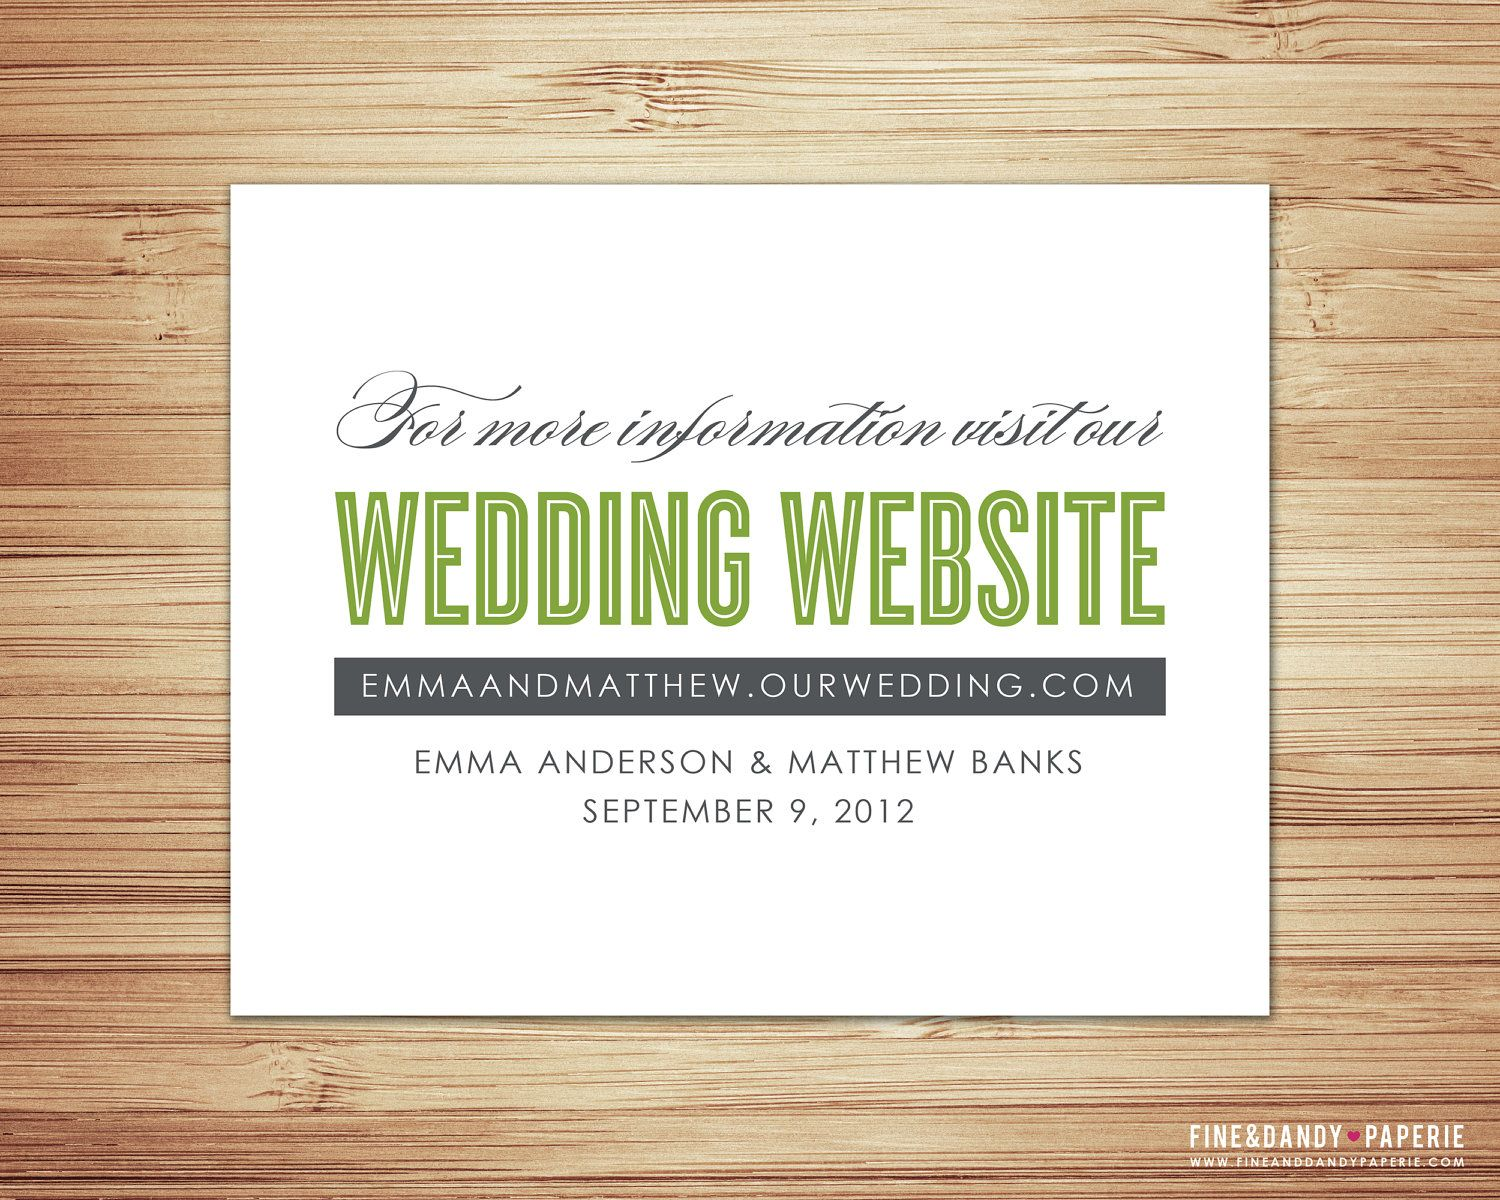 Inserts For Wedding Invitations: Wedding Website Insert For Invitation Instead Of Layers Of